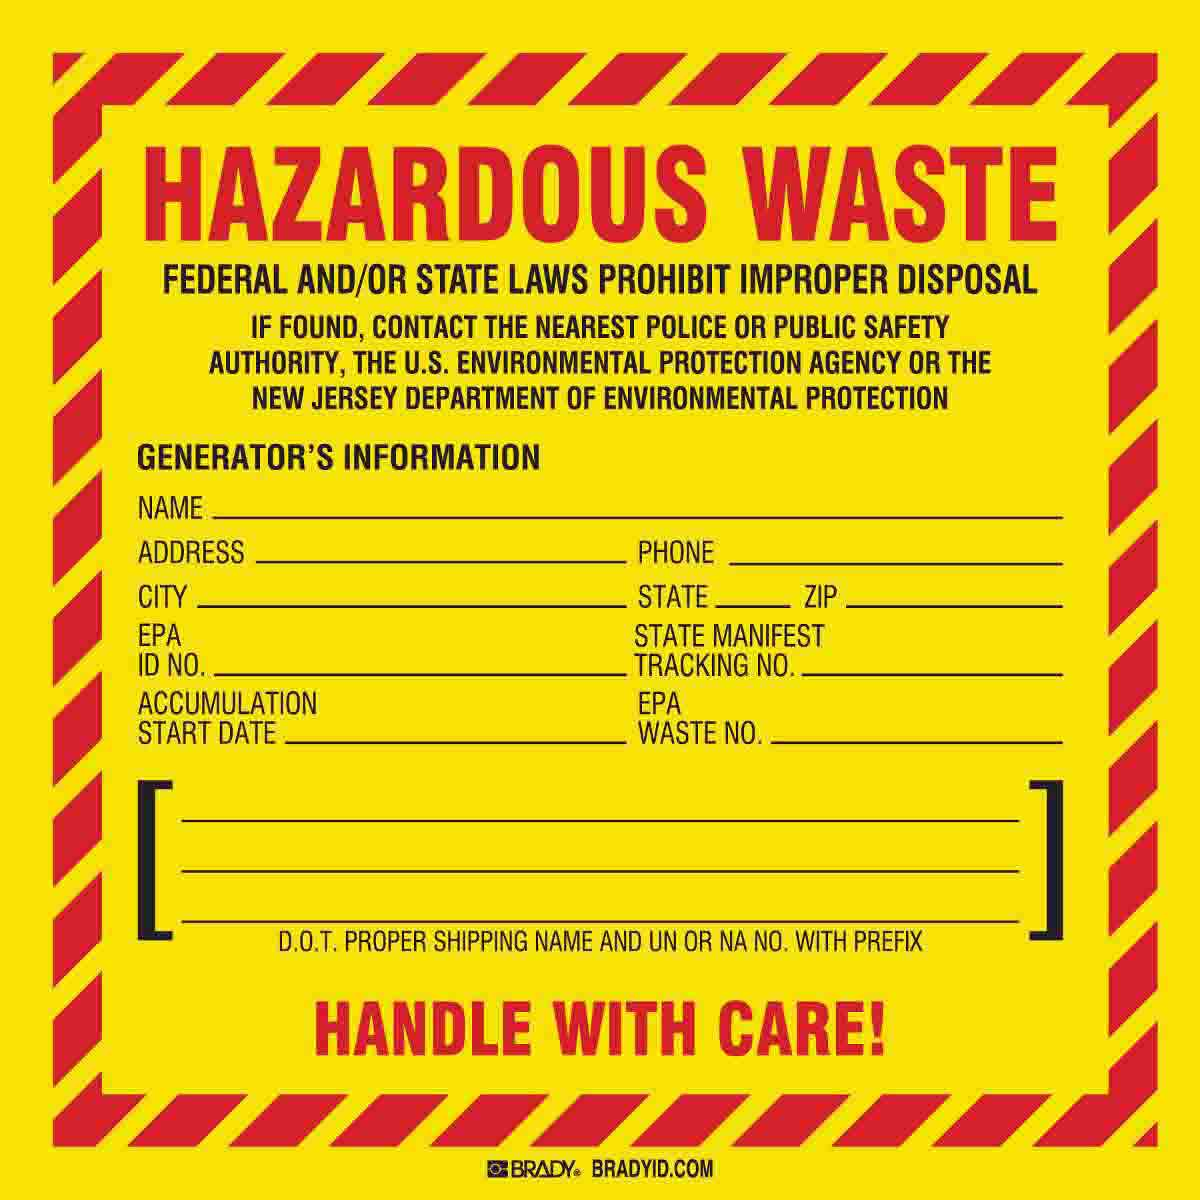 HAZARDOUS WASTE FEDERAL AND/OR STATE